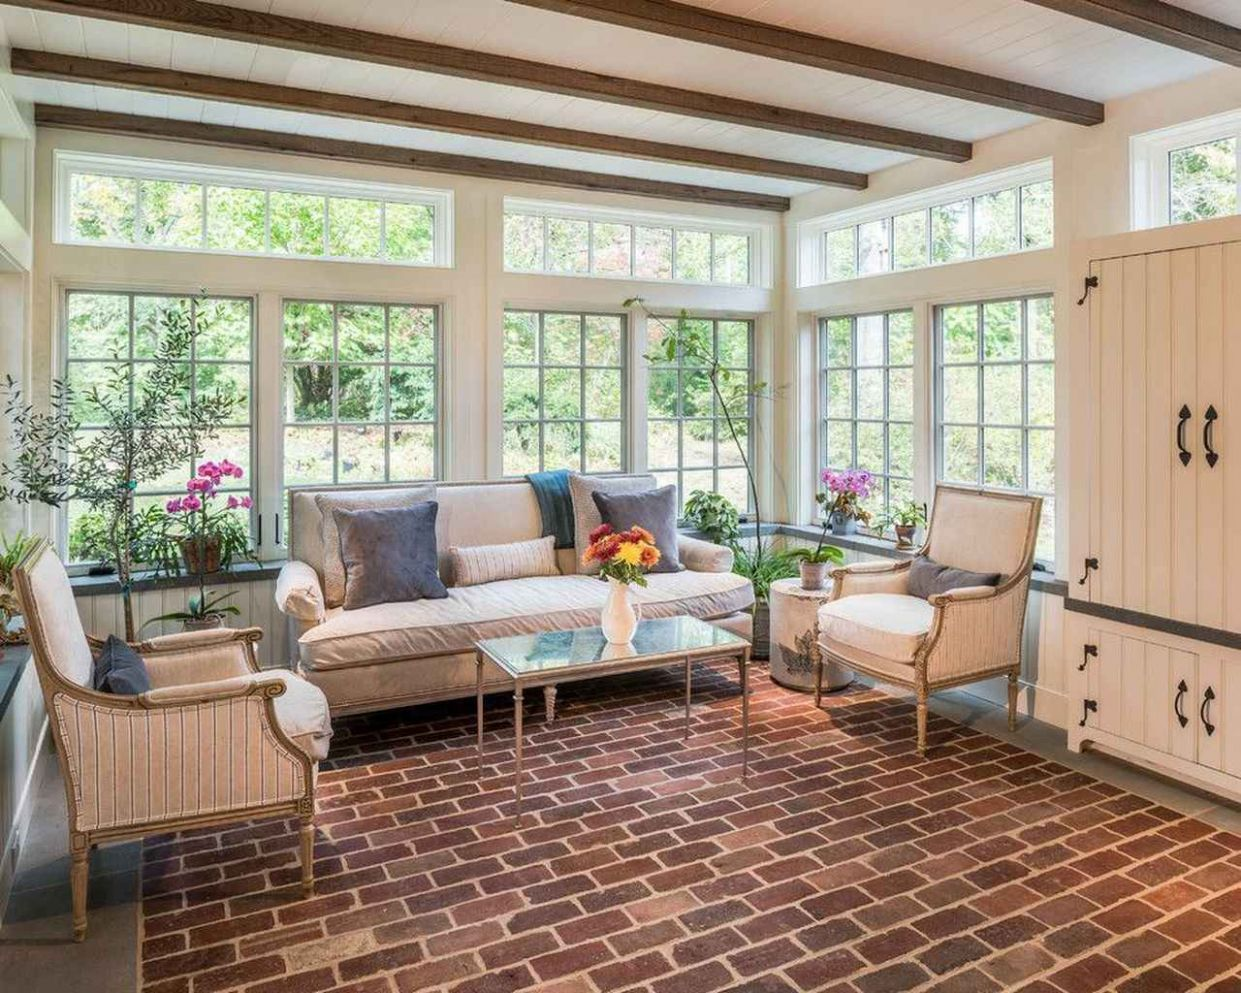 11 Cozy Modern Sunroom Decor Ideas - frontbackhome - modern sunroom ideas with pictures